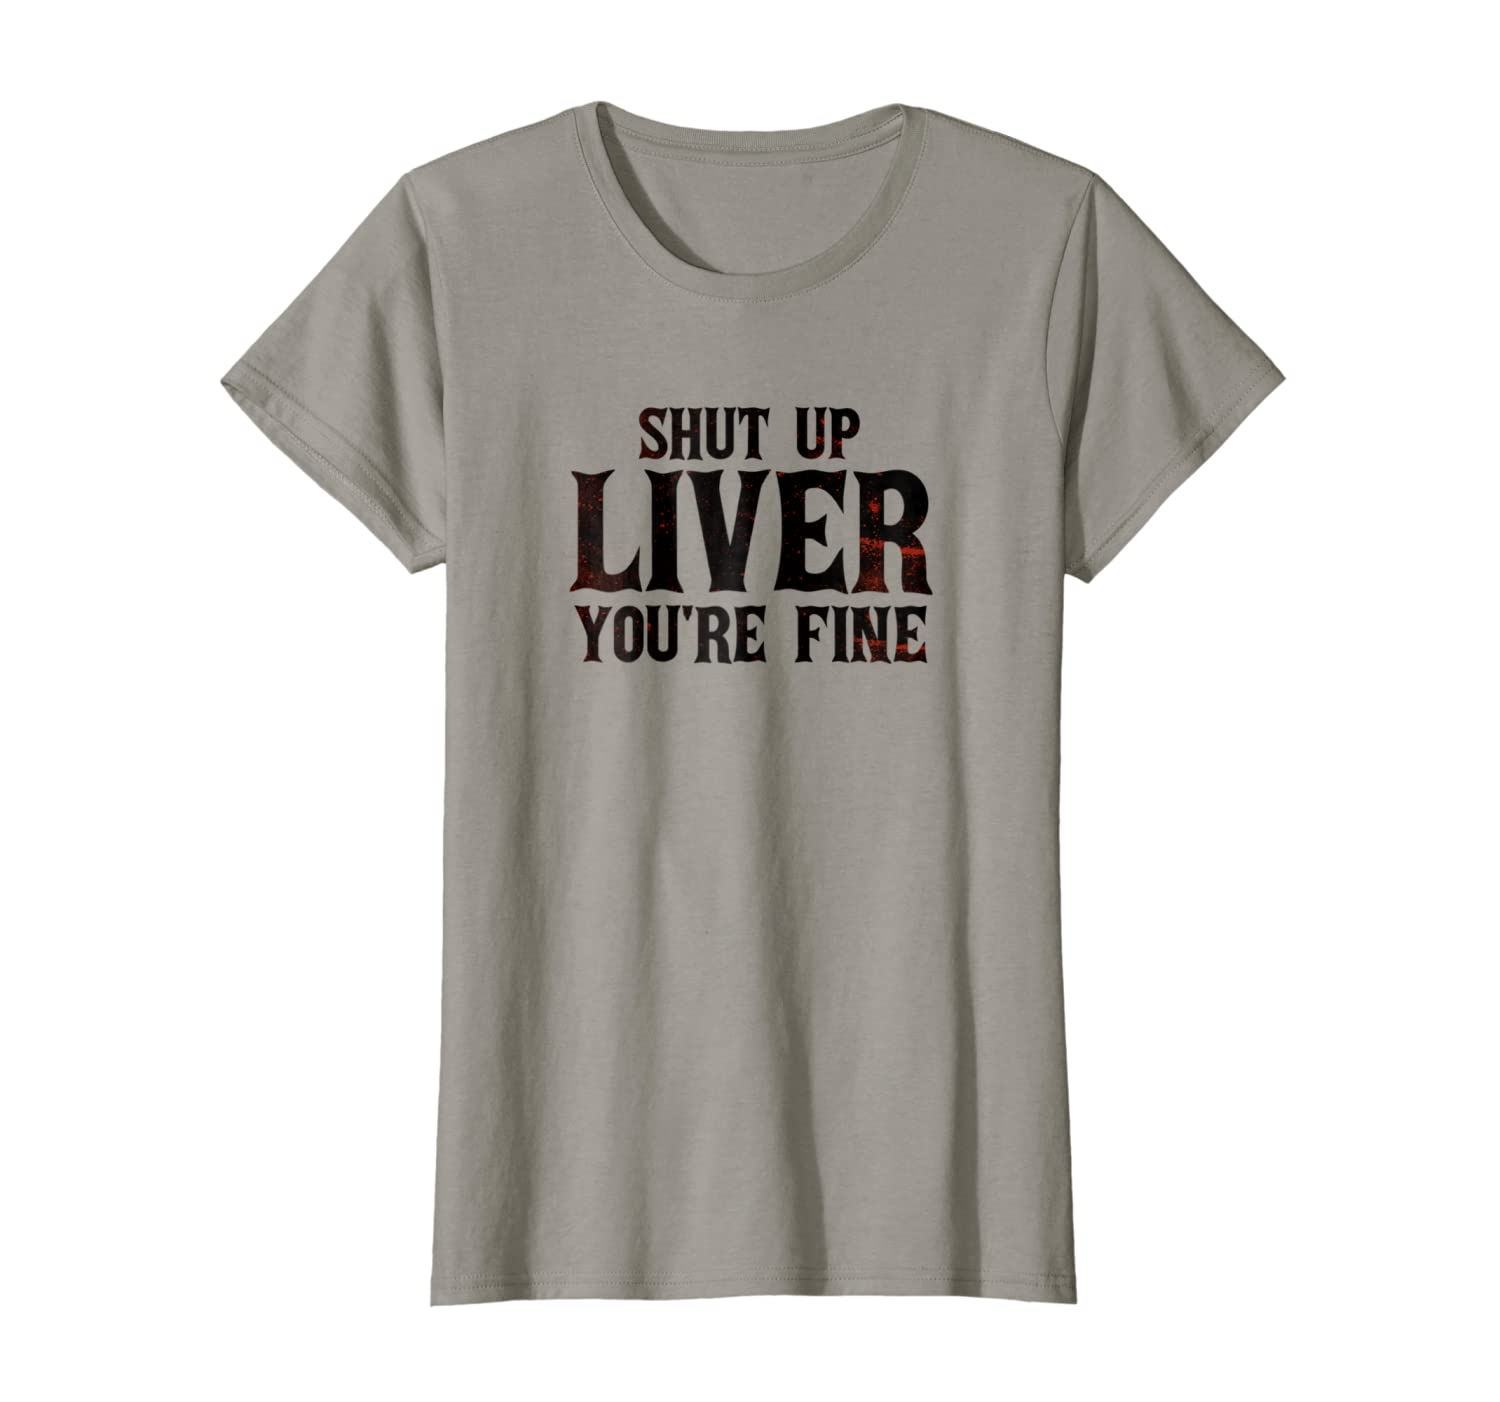 Shut Up Liver, Youre Fine T-Shirt - Funny Drinking T-Shirt